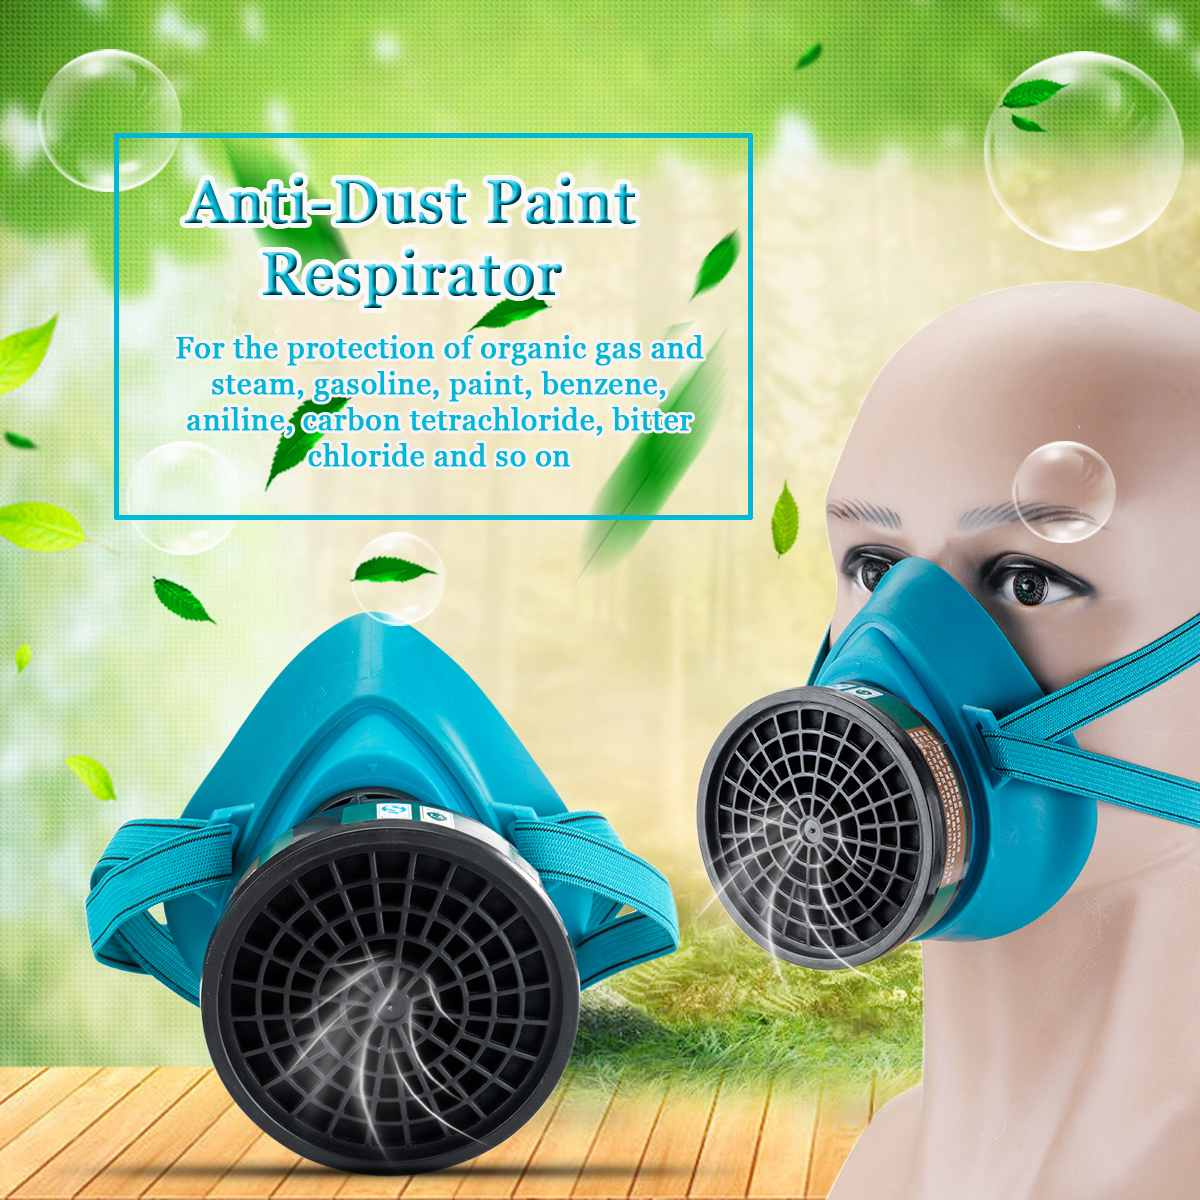 Safurance Rubber Respirator Gas Mask Comprehensive Cover Paint Chemical Pesticide Mask Anti Dust Protective Mask